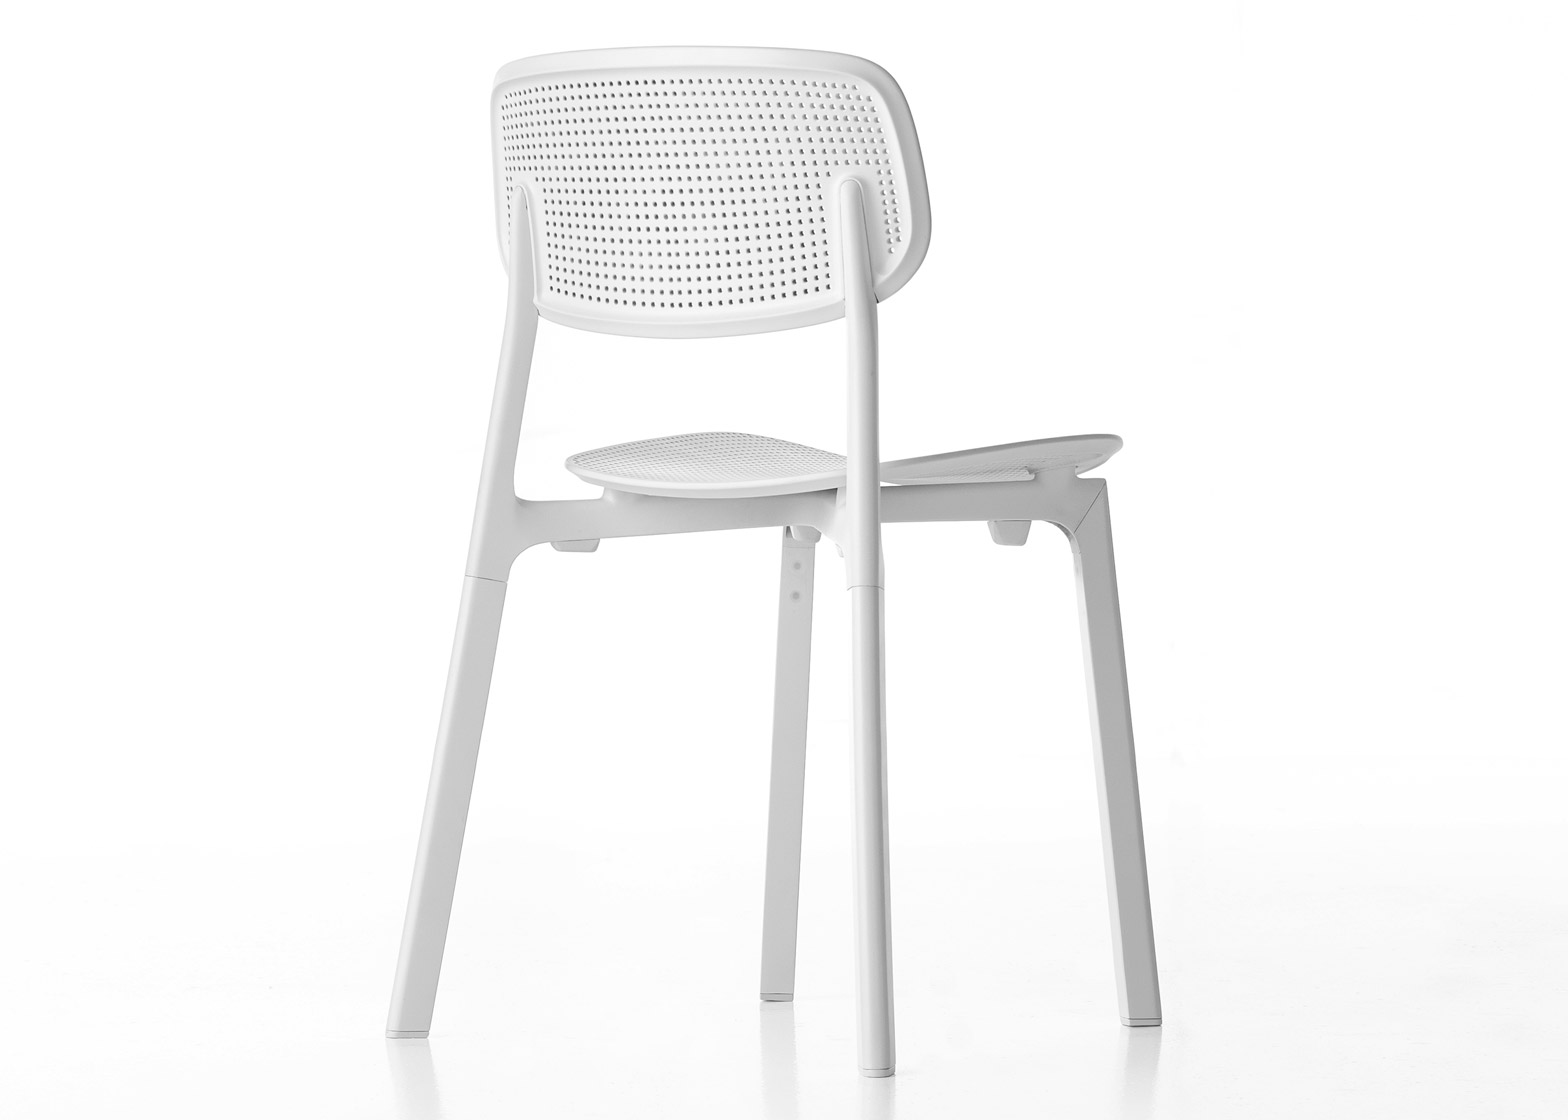 Colander chair by Patrick Norguet